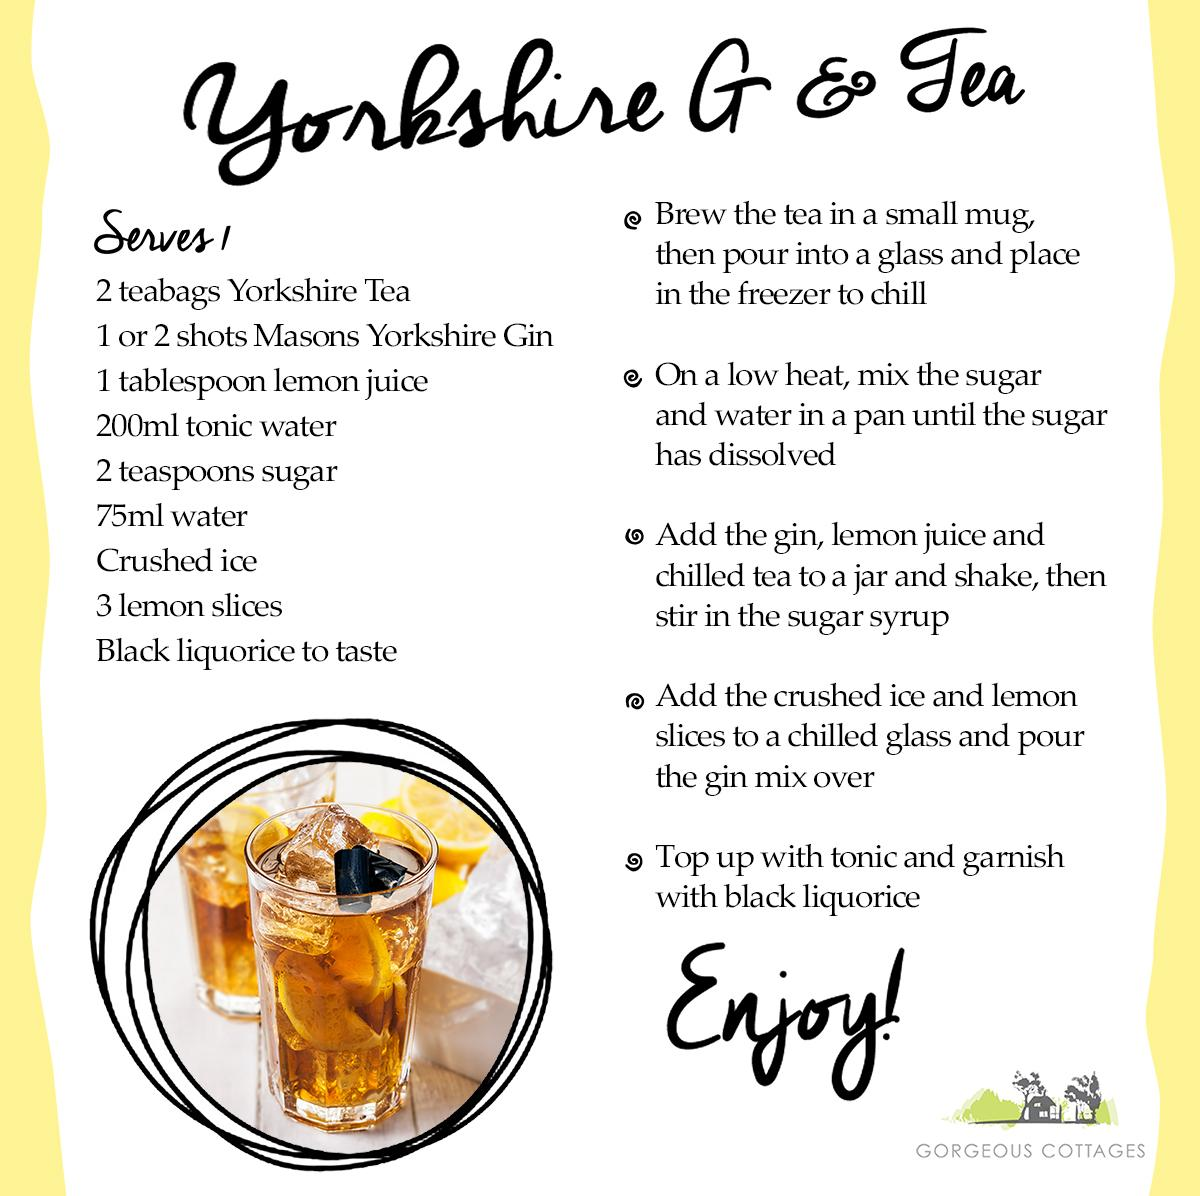 Yorkshire G and Tea